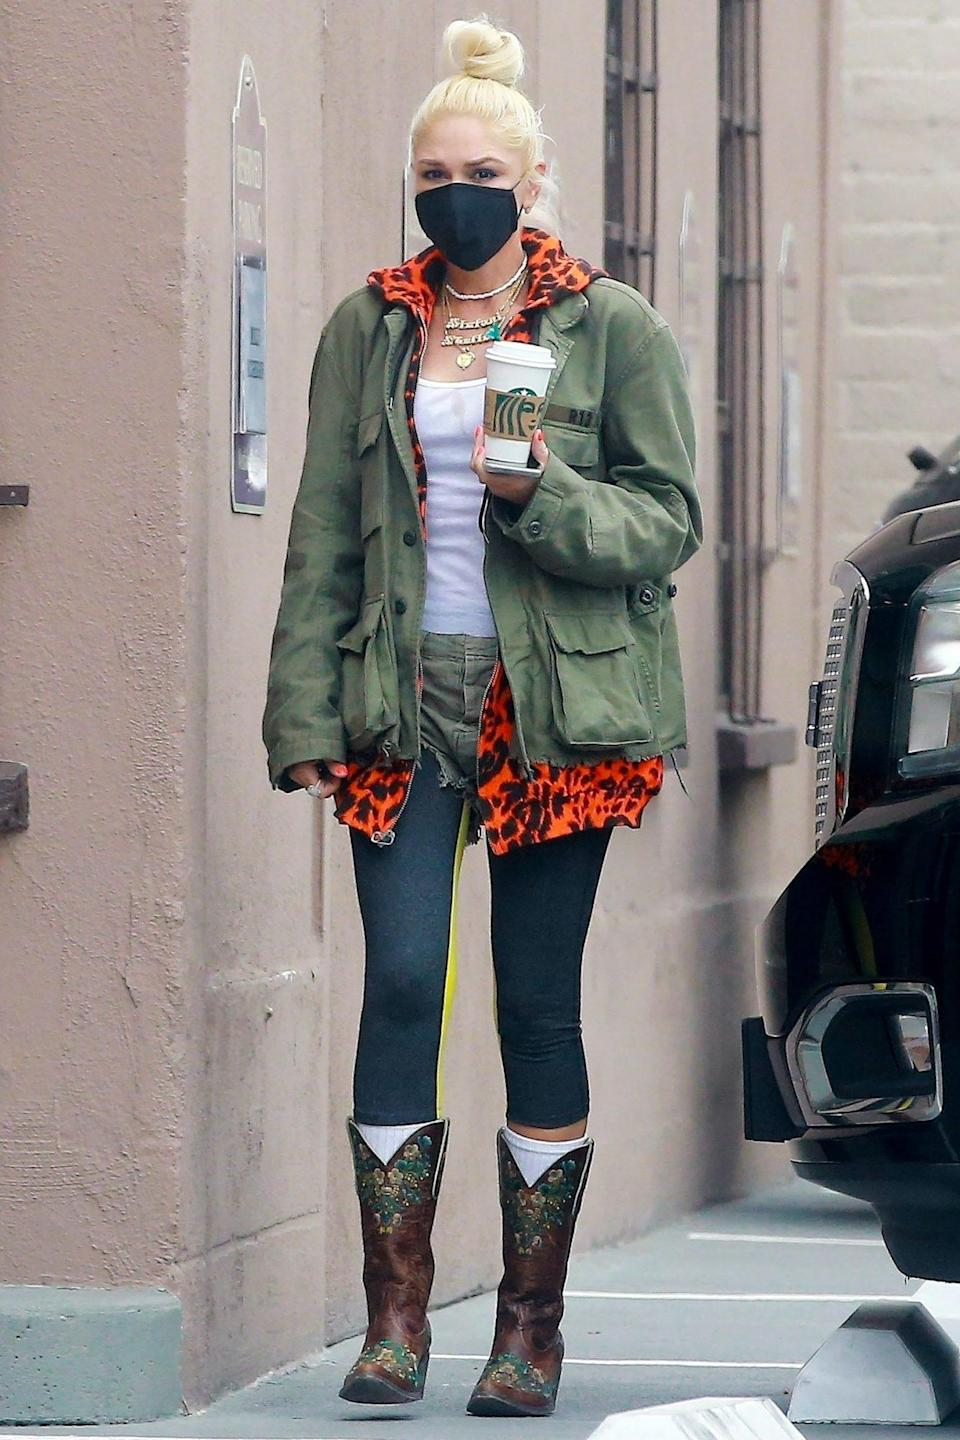 <p>Gwen Stefani heads to the studio in L.A. on Wednesday after taking a trip with her family.</p>